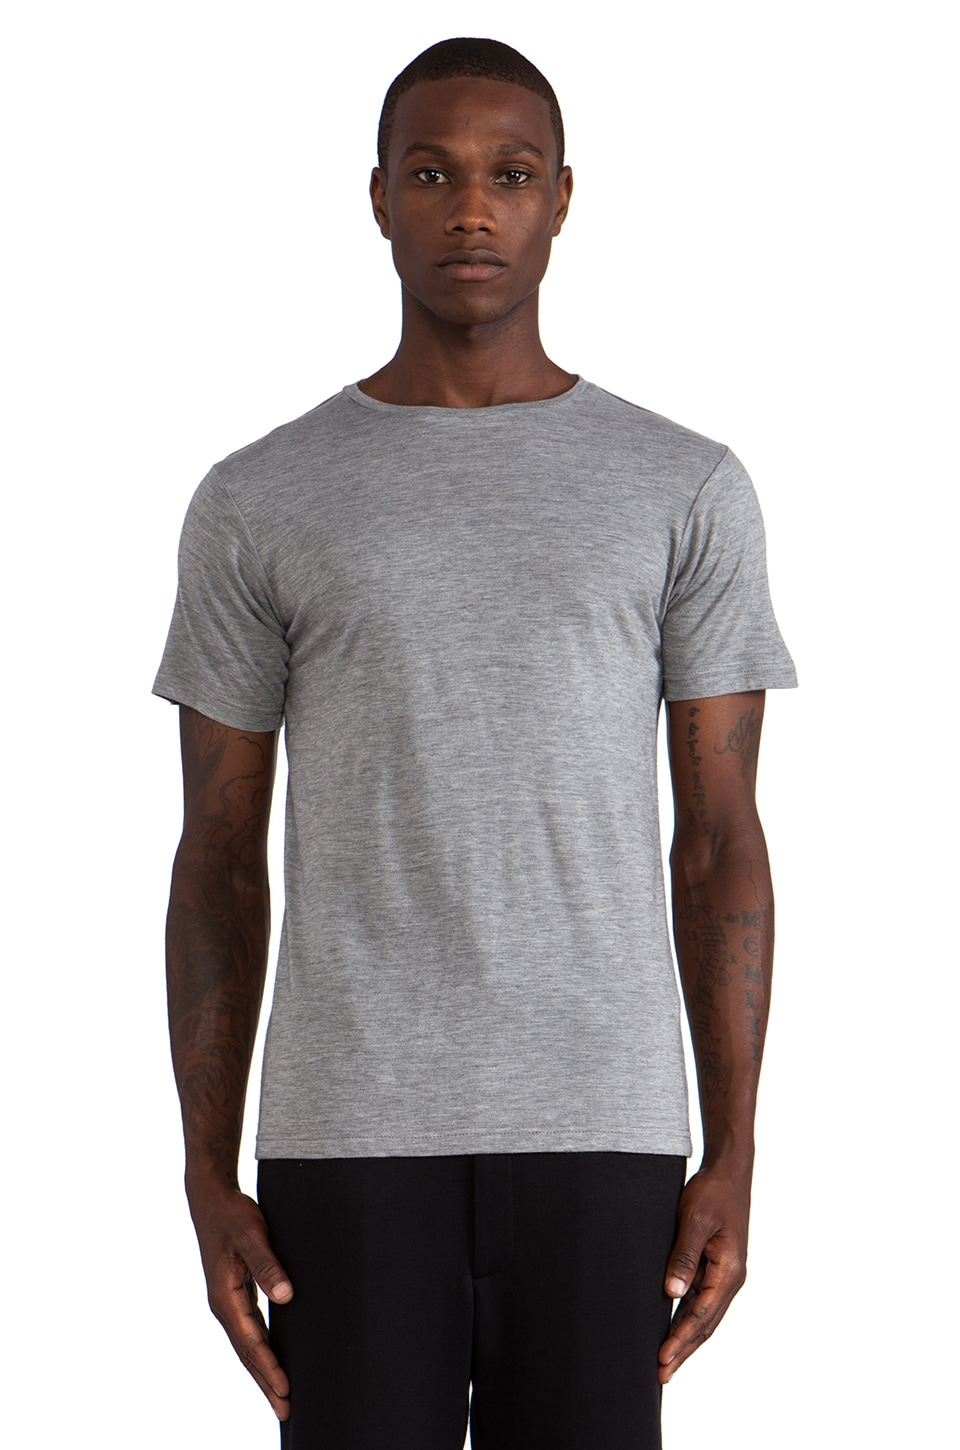 Public School Angora Blend Tee in Heather Grey